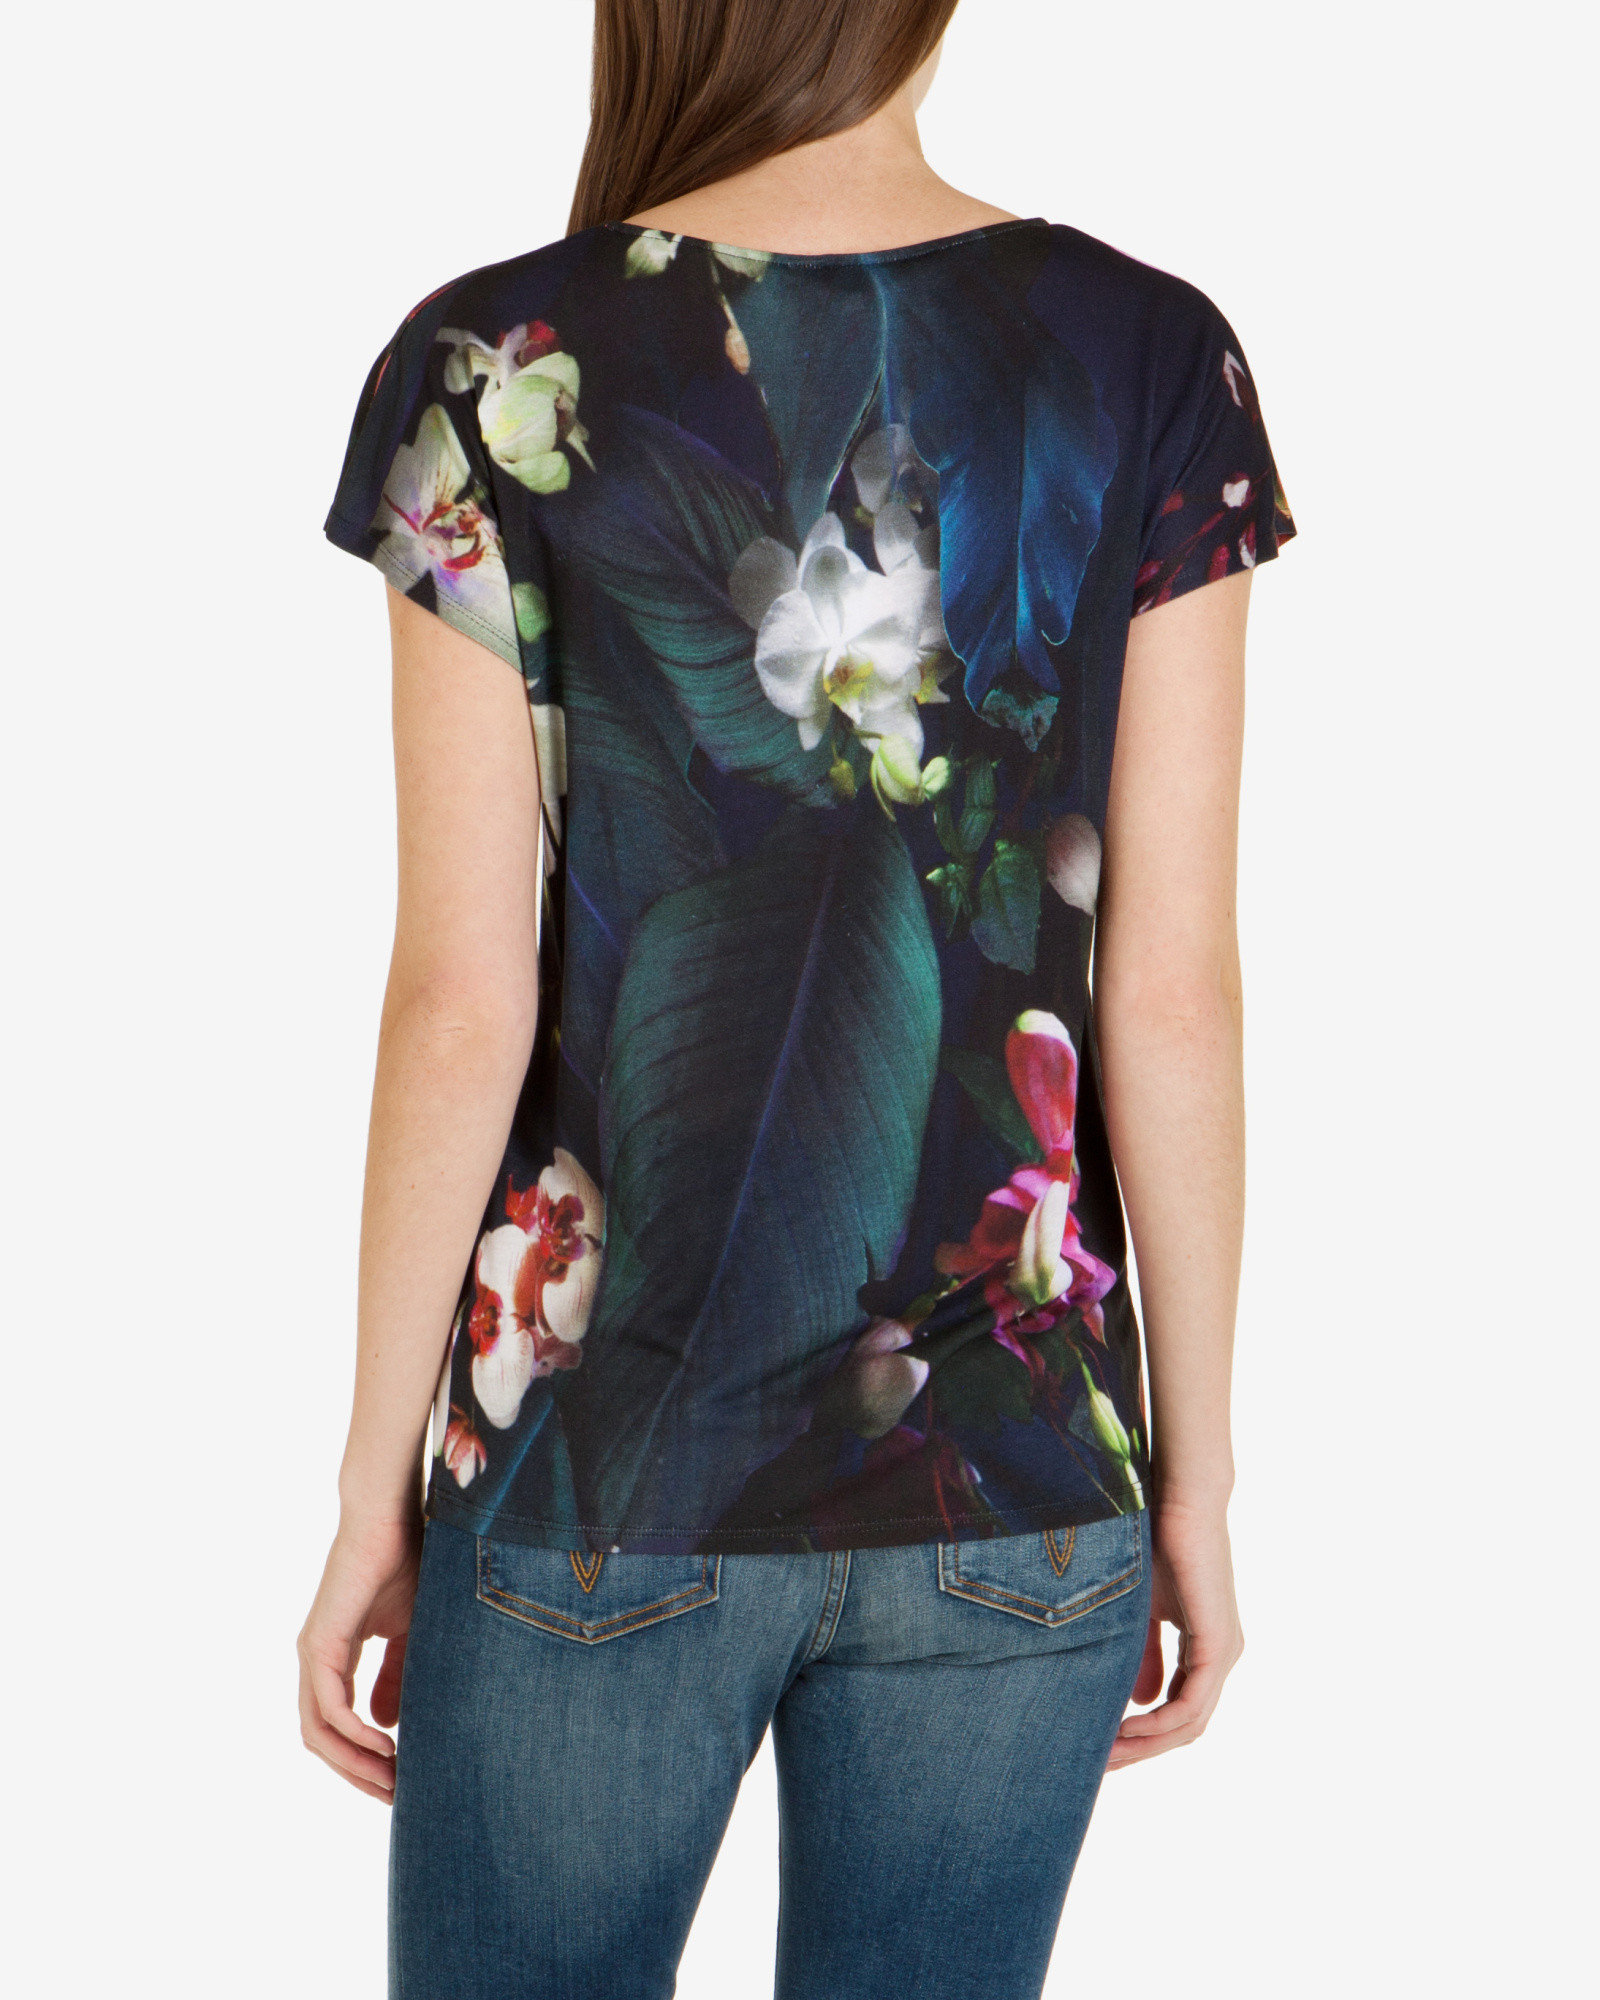 Ted baker fuchsia floral t shirt in blue lyst for Ted baker blue shirt